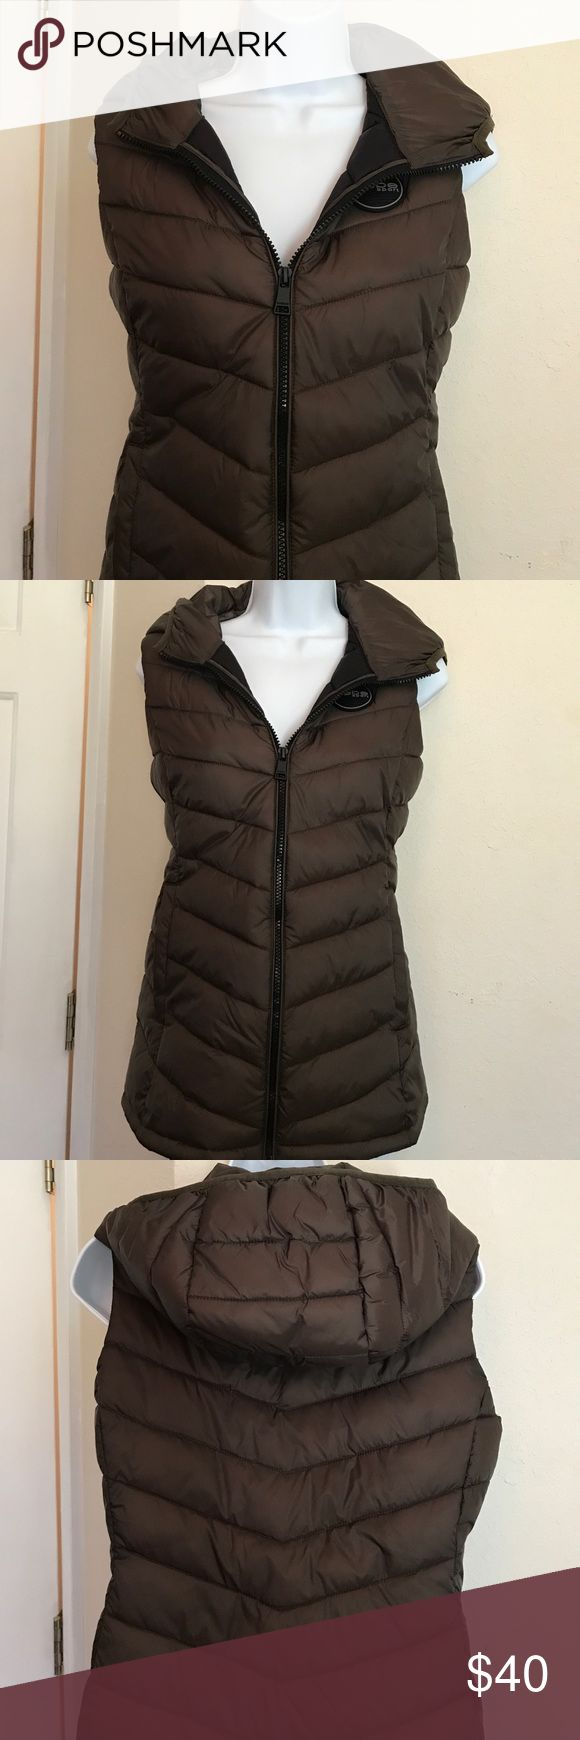 """Ladies Hooded Vest from Bebe Wonderful snug fitting, stylish nylon vest with hood and pockets. Ladies size small/petite Length 25.5"""" Width 18.5"""" under arm & 17"""" waist. bebe Jackets & Coats Vests"""